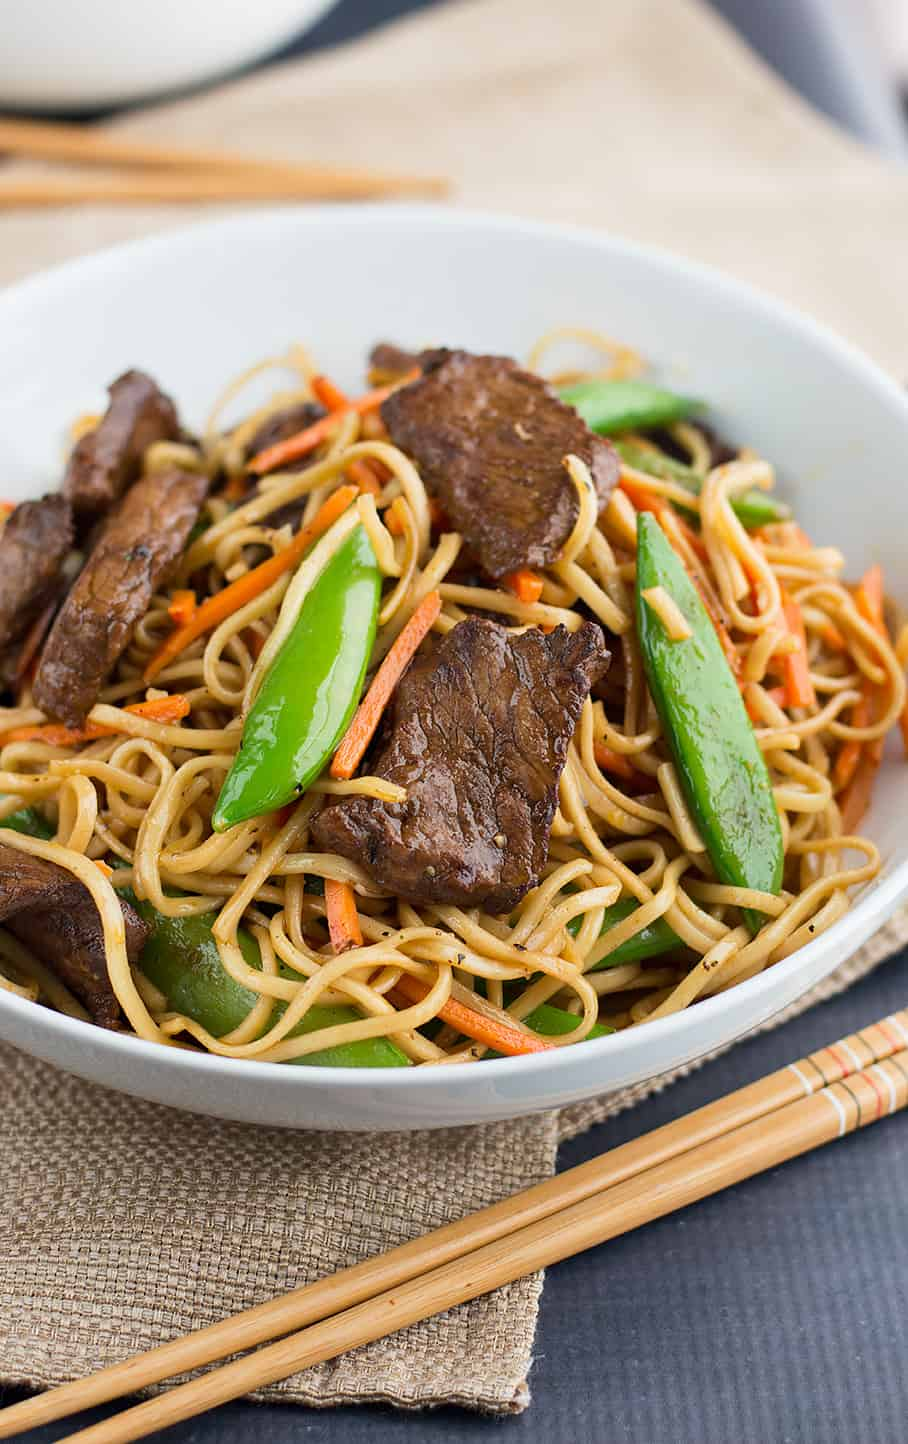 Red Thai Curry Stir Fried Chinese Noodles with Beef - Savory Spicerack